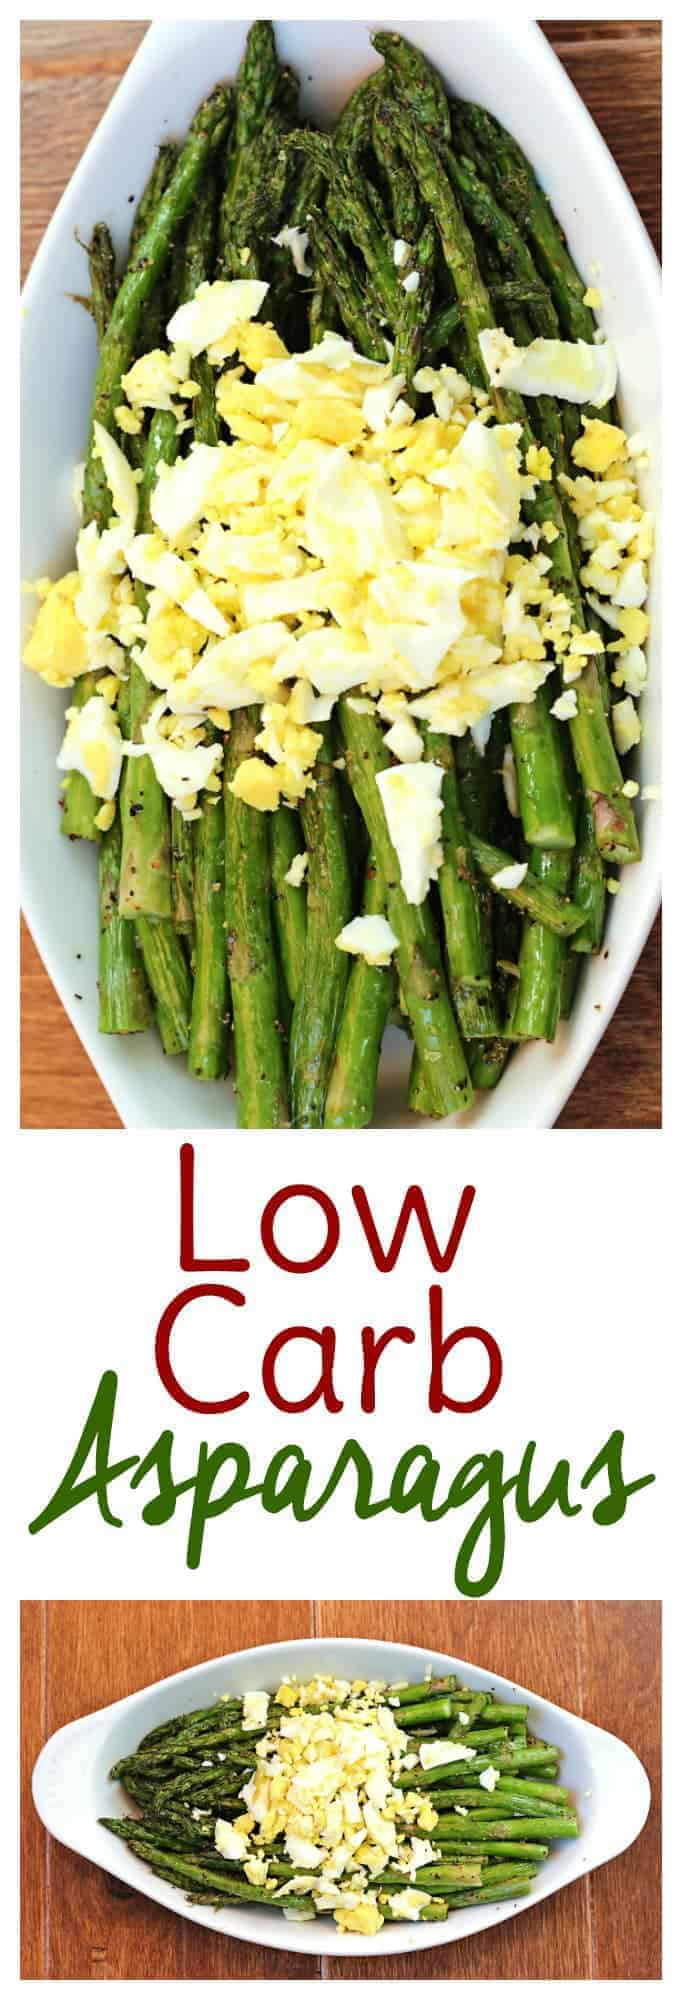 If you're on a low carb diet and struggling to get enough vegetables into your diet, try this asparagus low carb vegetable recipe. The hard boiled egg and olive oil will help you meet your protein and fat macros and you'll love the taste. Perfect for high fat, low carb diets like keto!